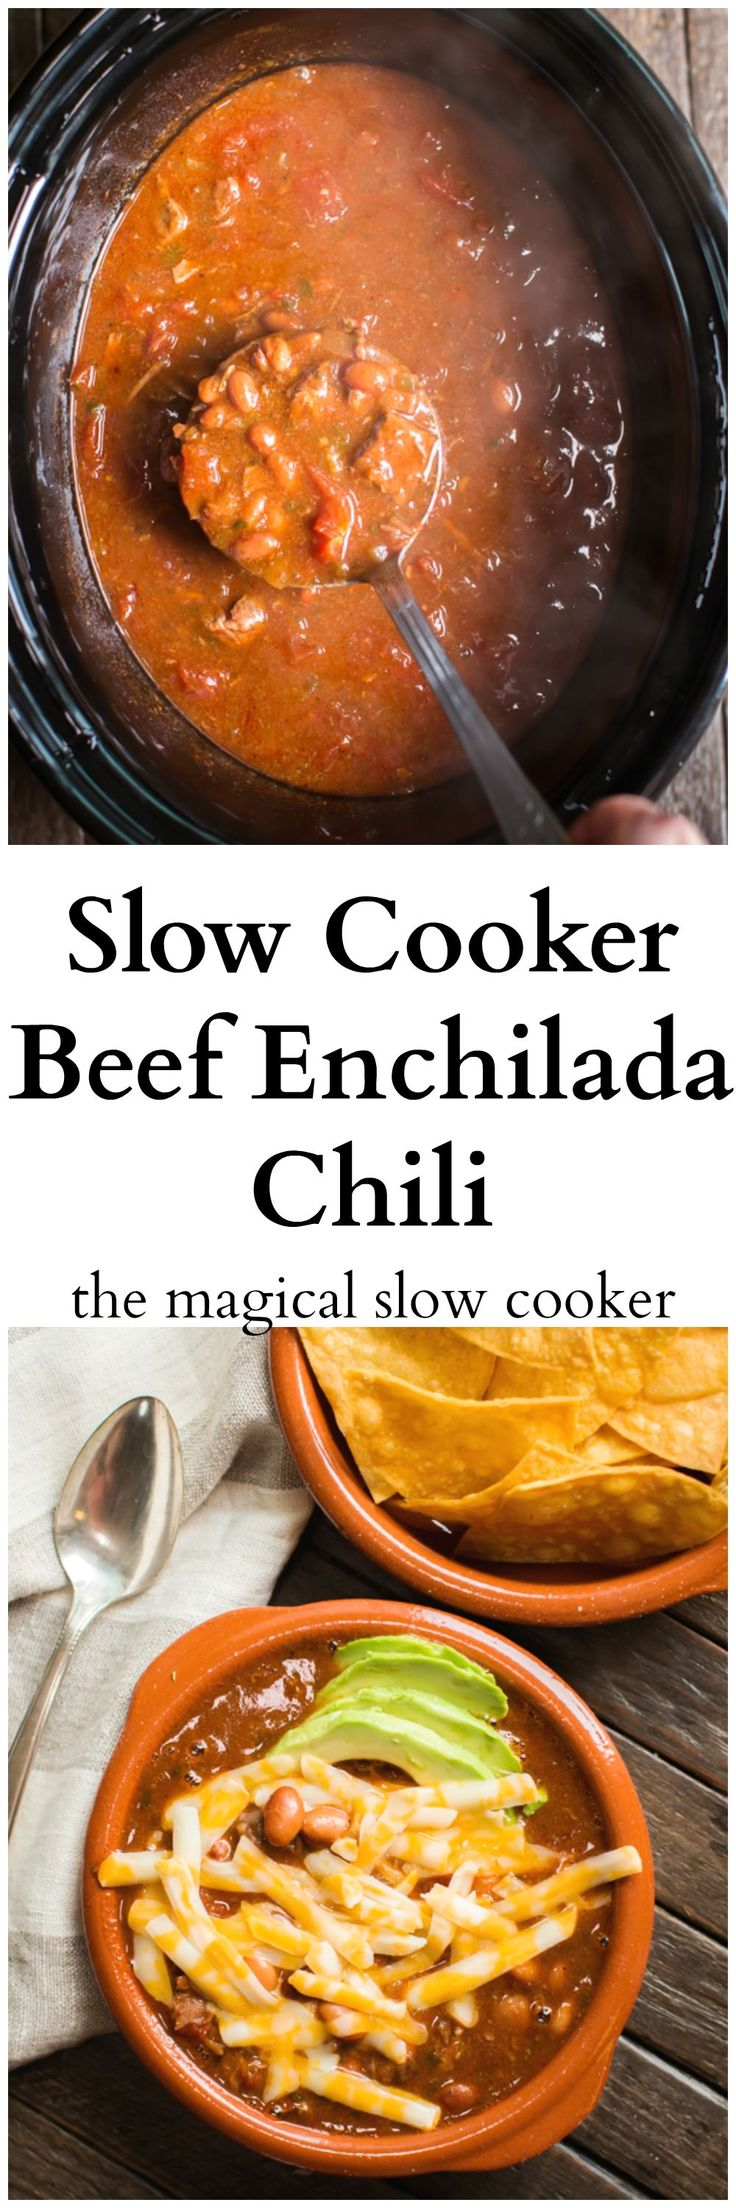 Slow Cooker Beef Enchilada Chili. Made with stew meat instead of ground beef. So good served with tortilla chips.